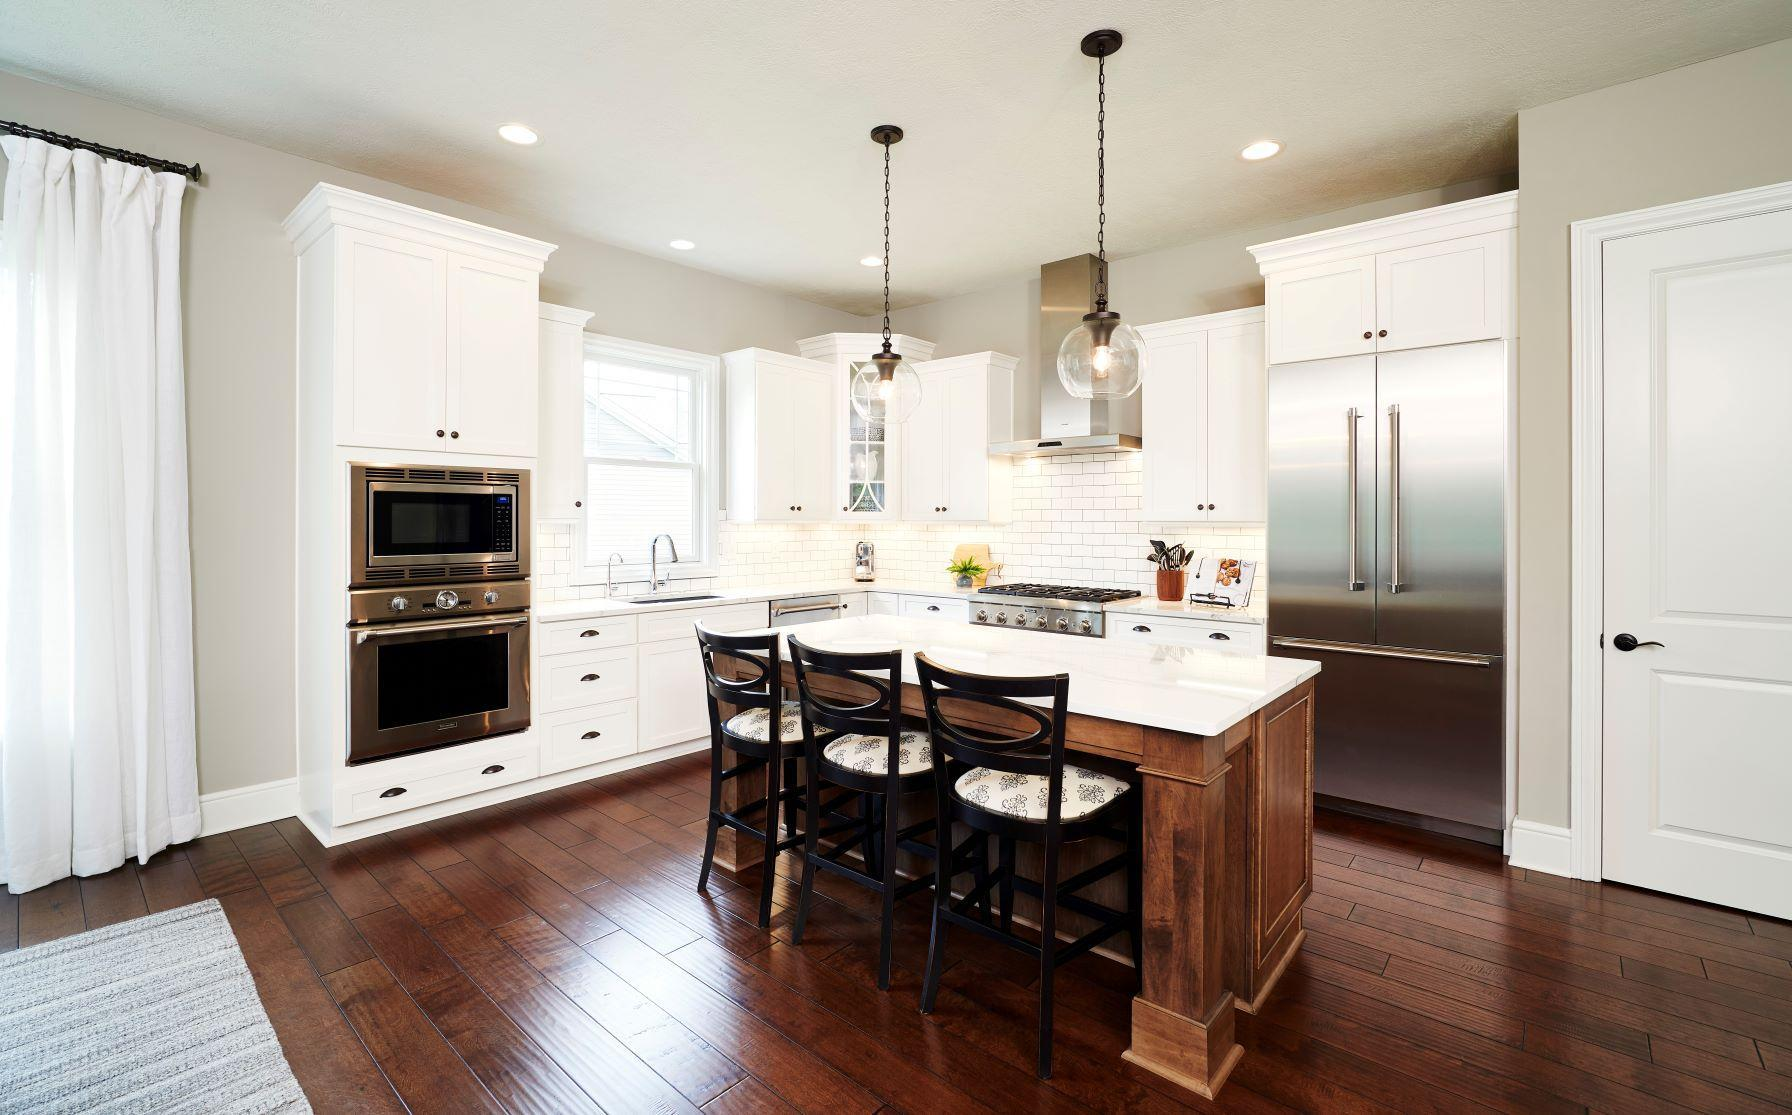 Kitchen featured in the Victoria By Eddy Homes in Pittsburgh, PA